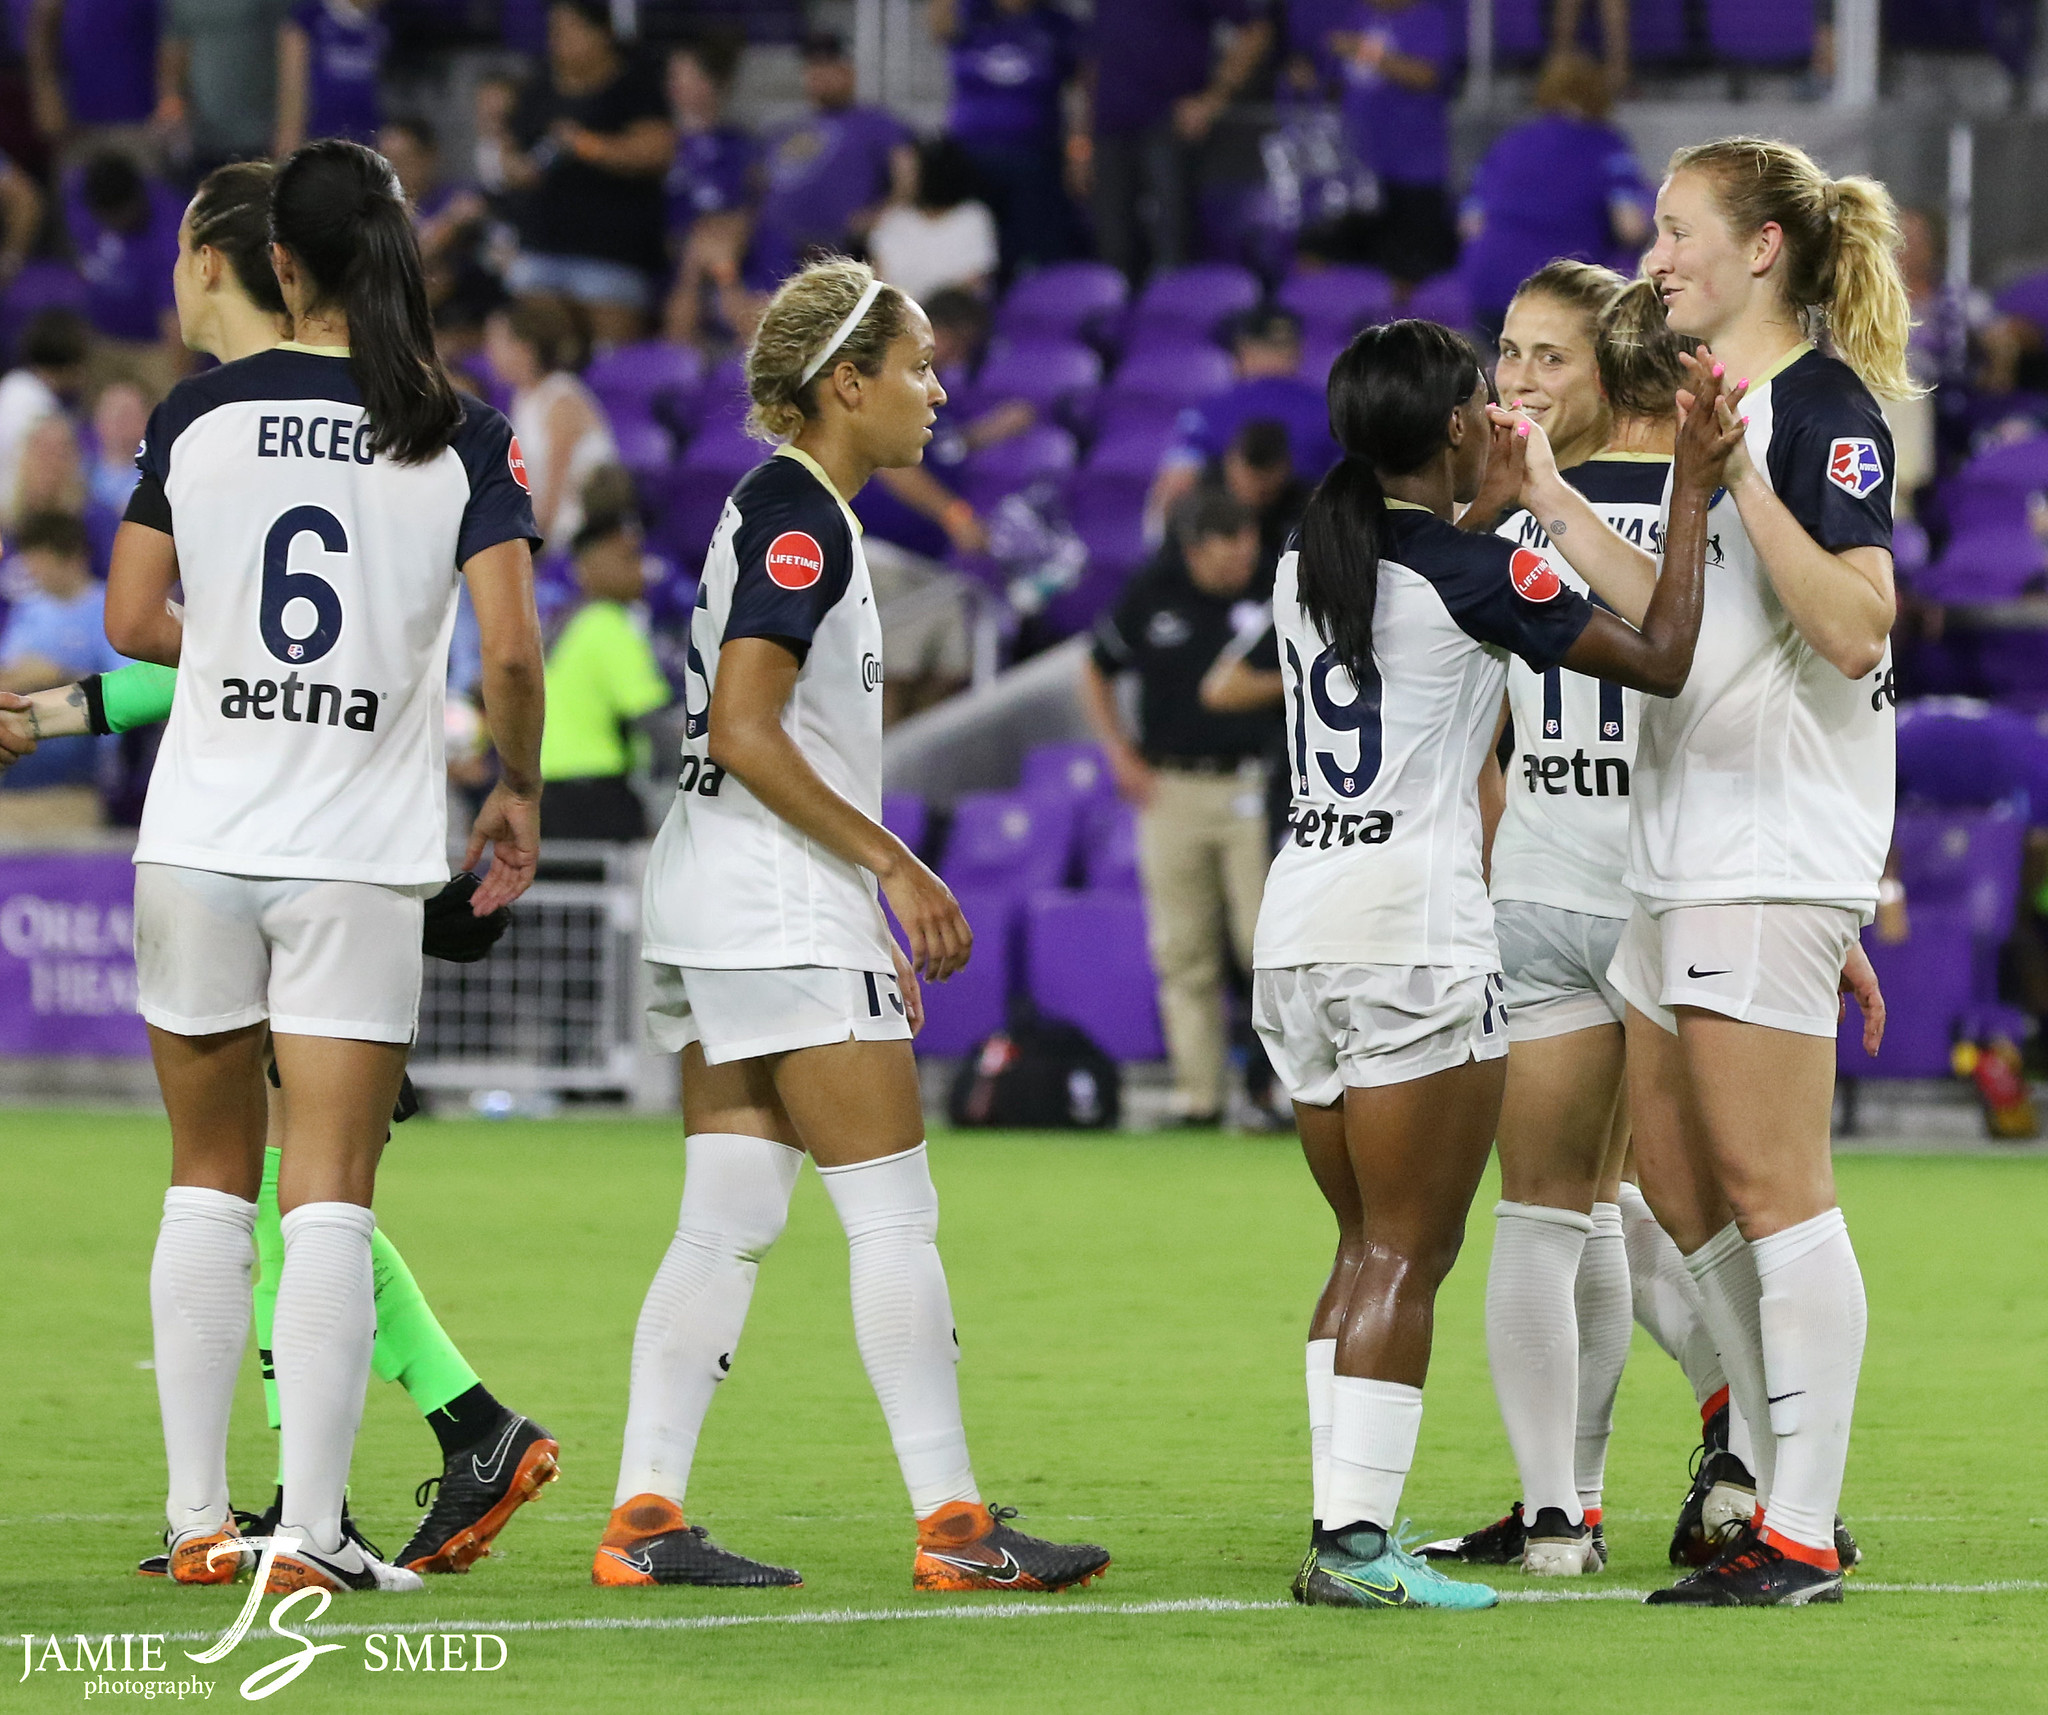 NC Courage - @Jamie Smed